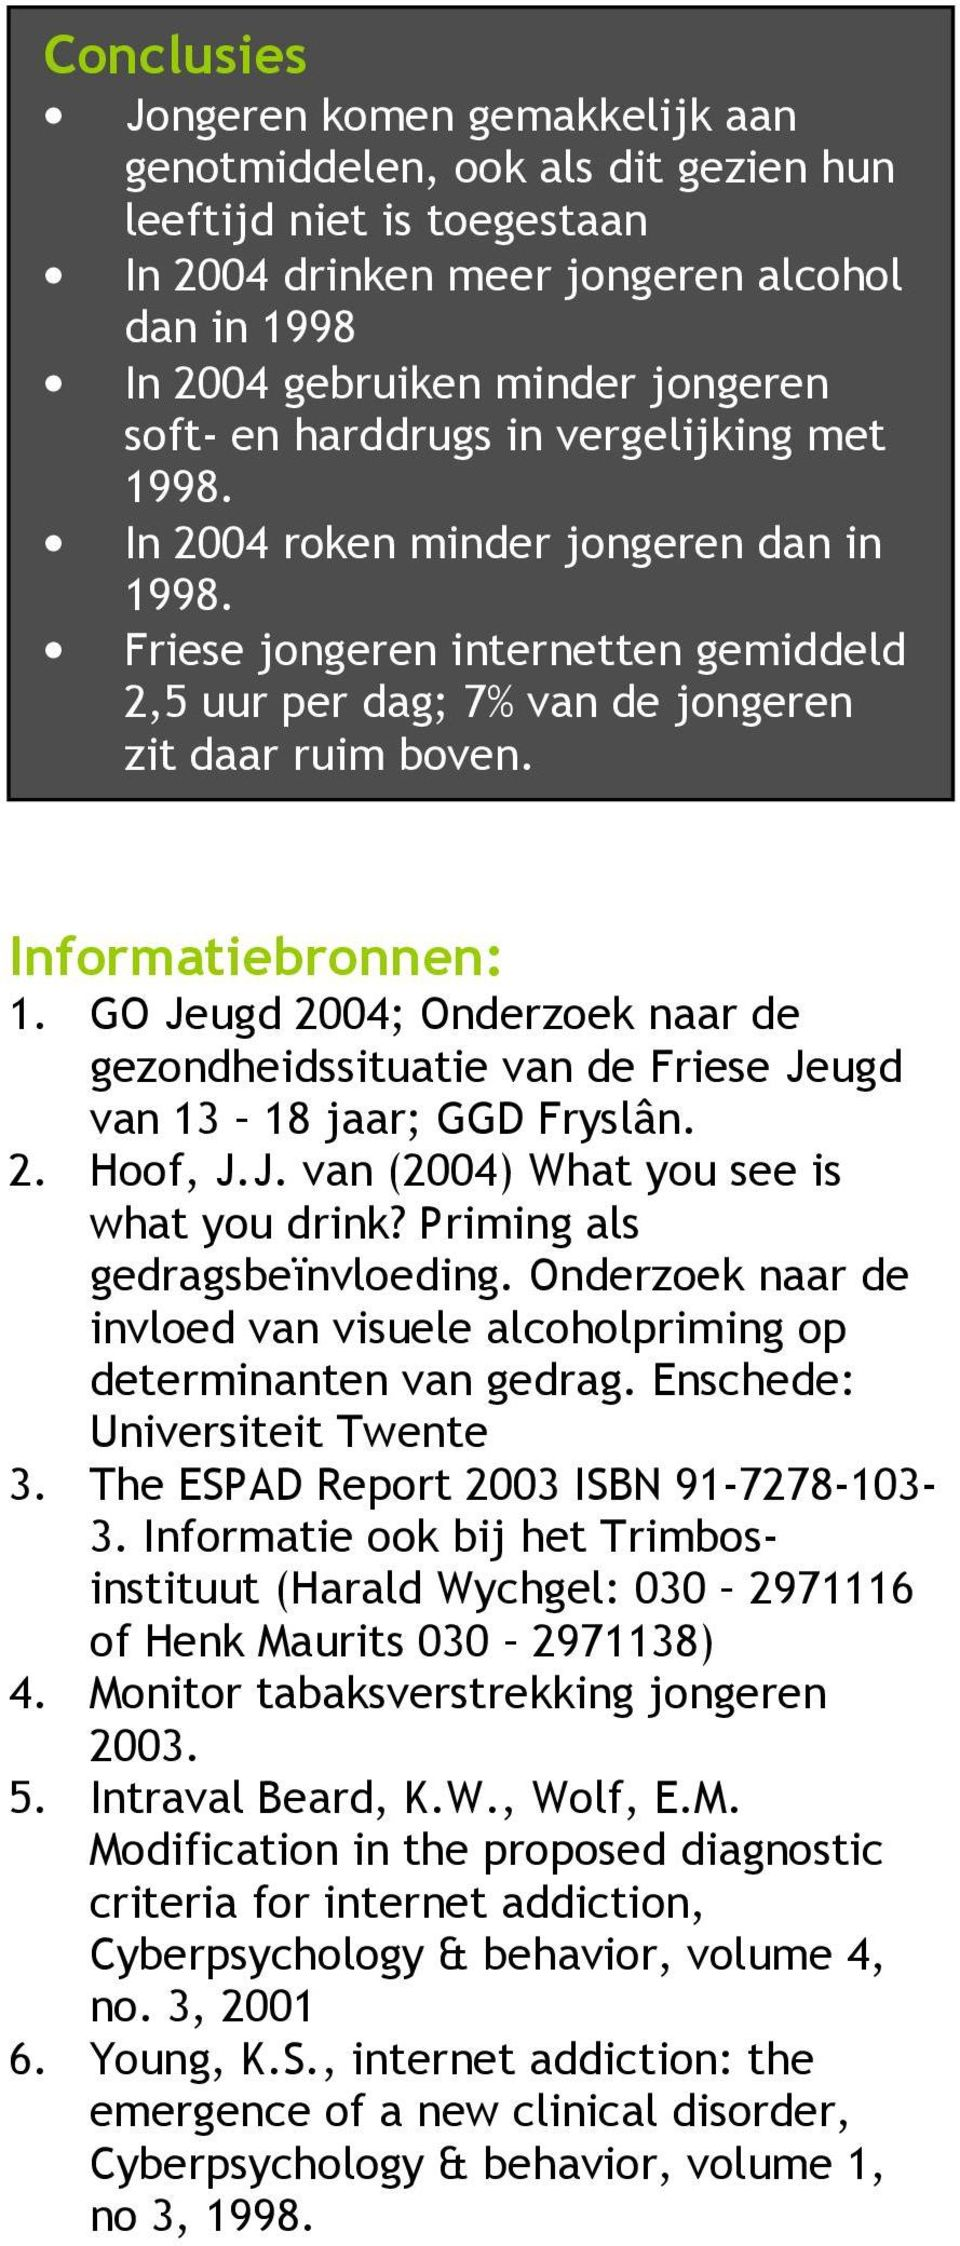 GO Jeugd 2004; Onderzoek naar de gezondheidssituatie van de Friese Jeugd van 13 18 jaar; GGD Fryslân. 2. Hoof, J.J. van (2004) What you see is what you drink? Priming als gedragsbeïnvloeding.